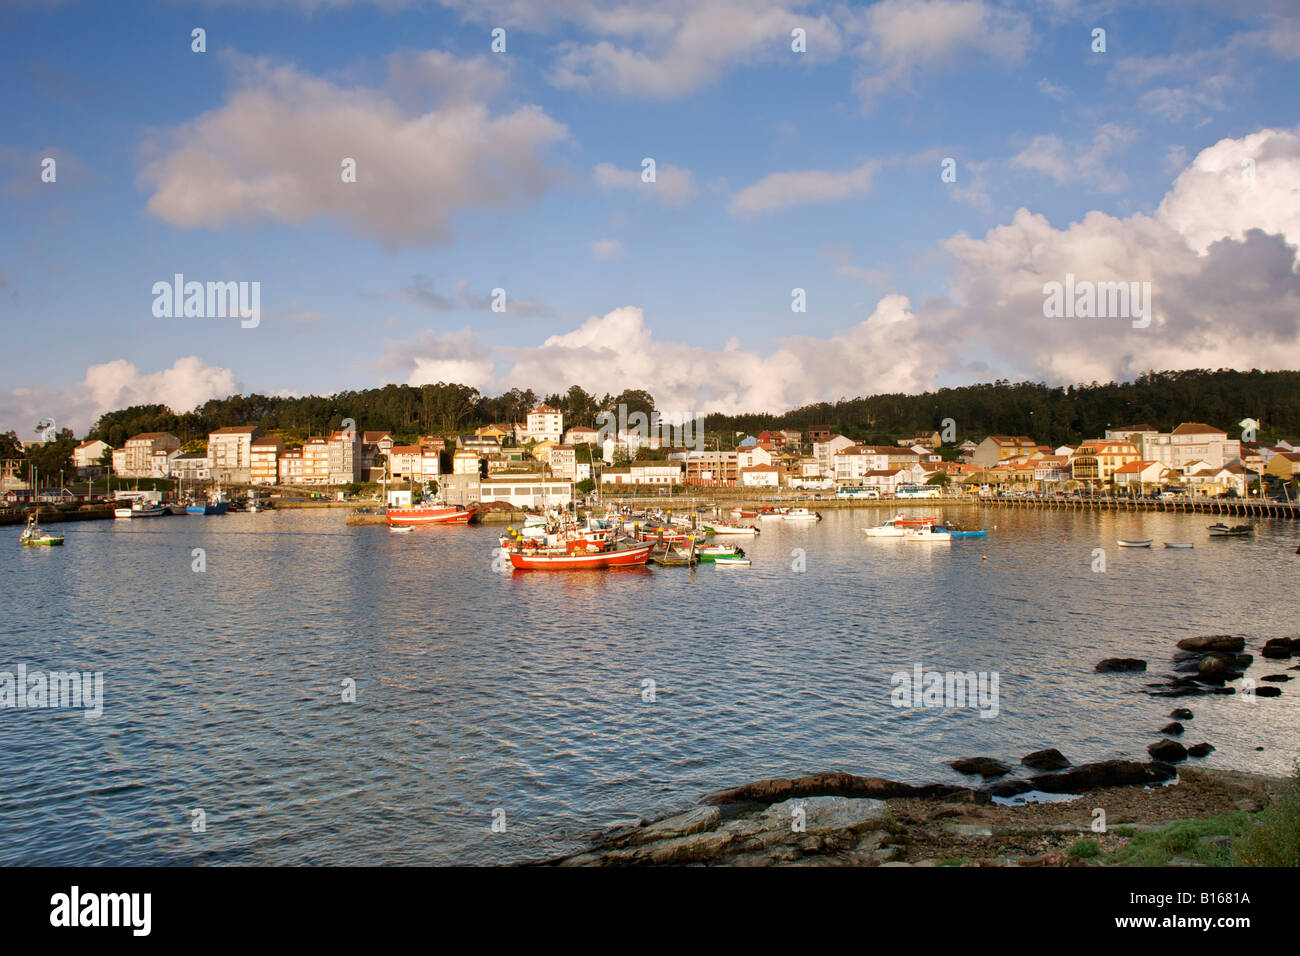 The port of Camariñas in the Galicia region in Spain. - Stock Image